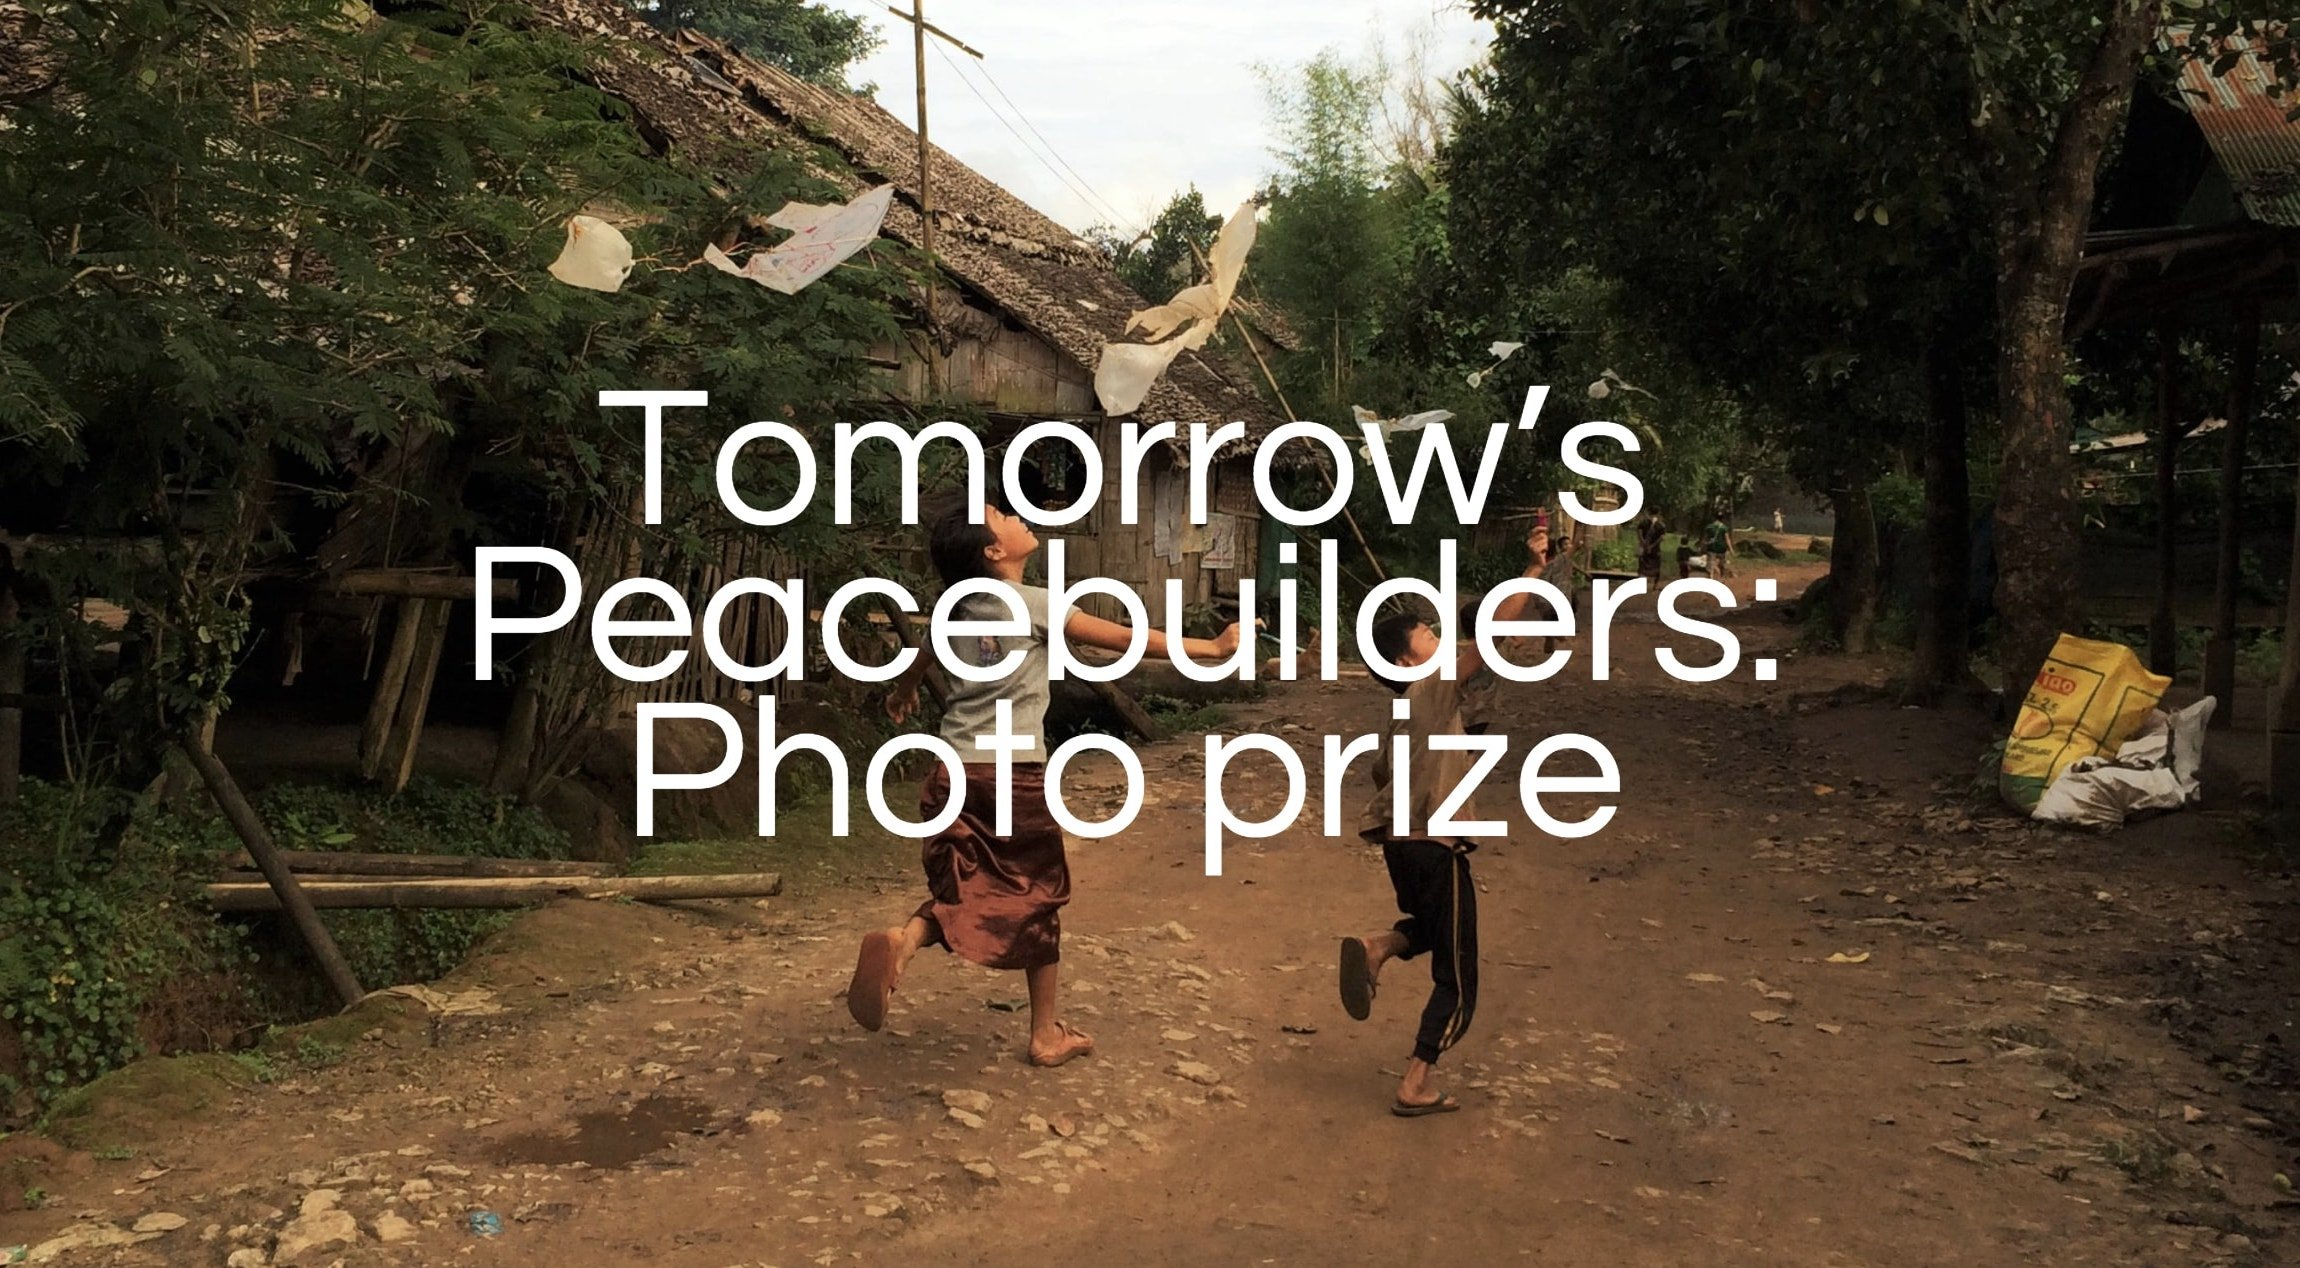 Tomorrow's Peacebuilders Photo Prize 2018